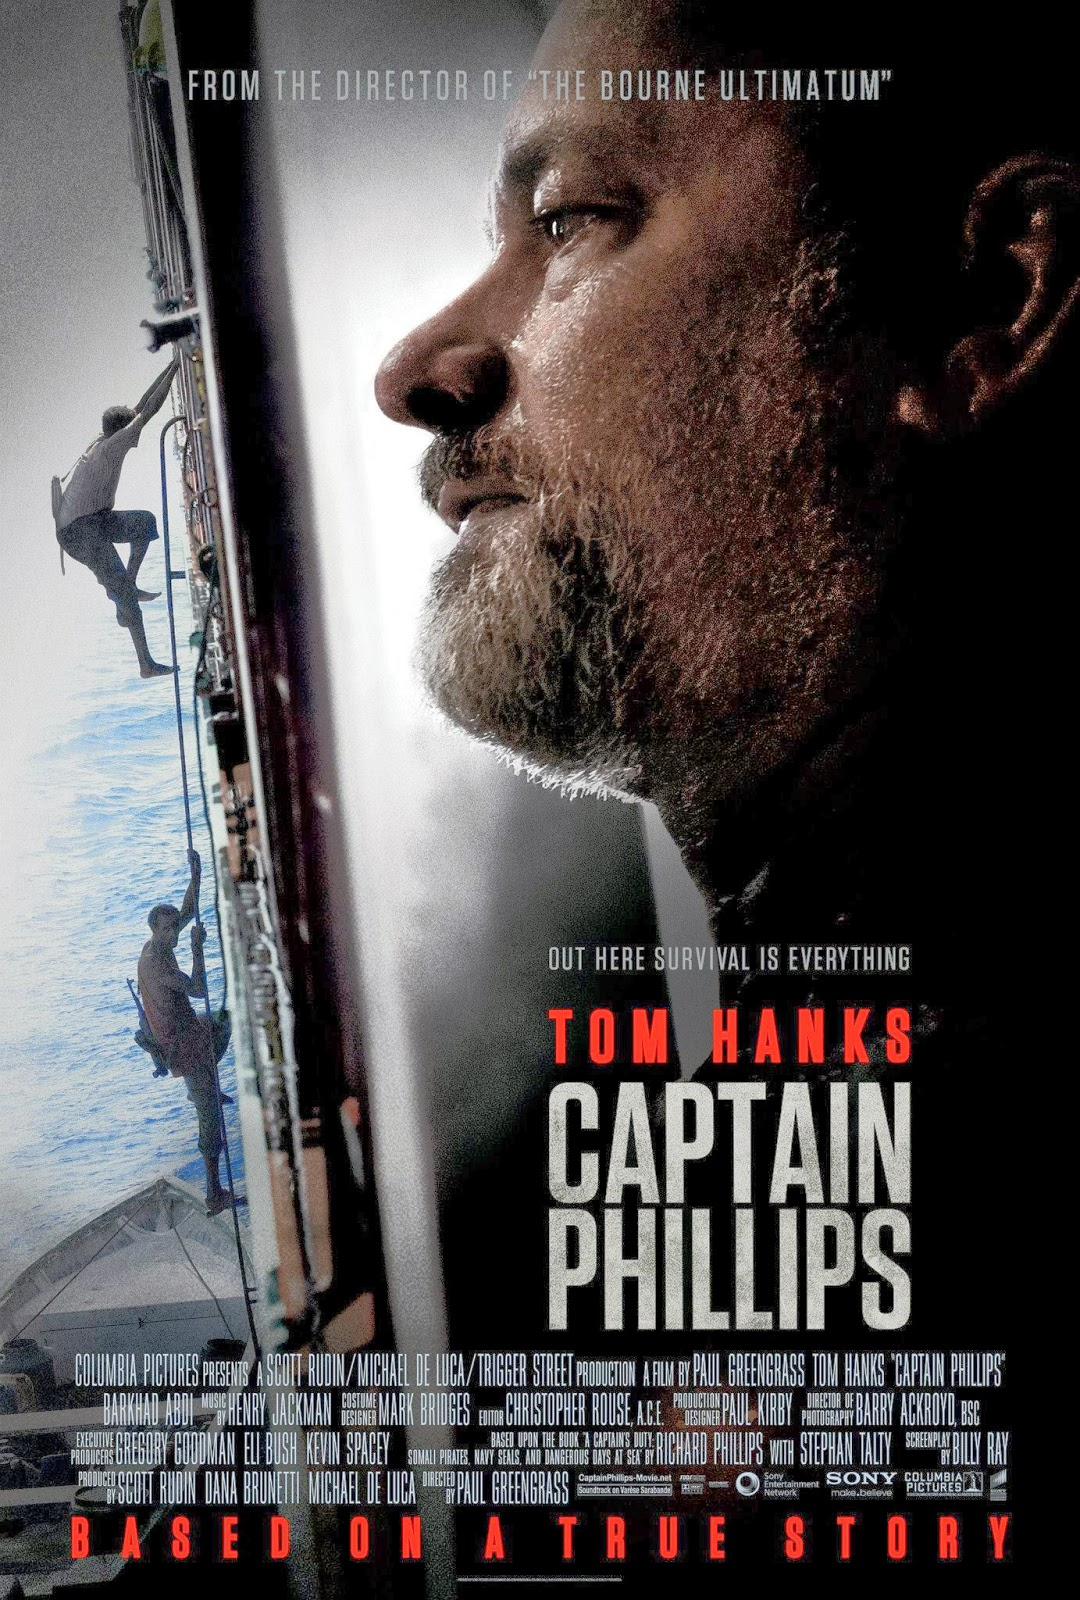 CAPTAIN PHILLIPS Family Movie Review - Your Family Expert